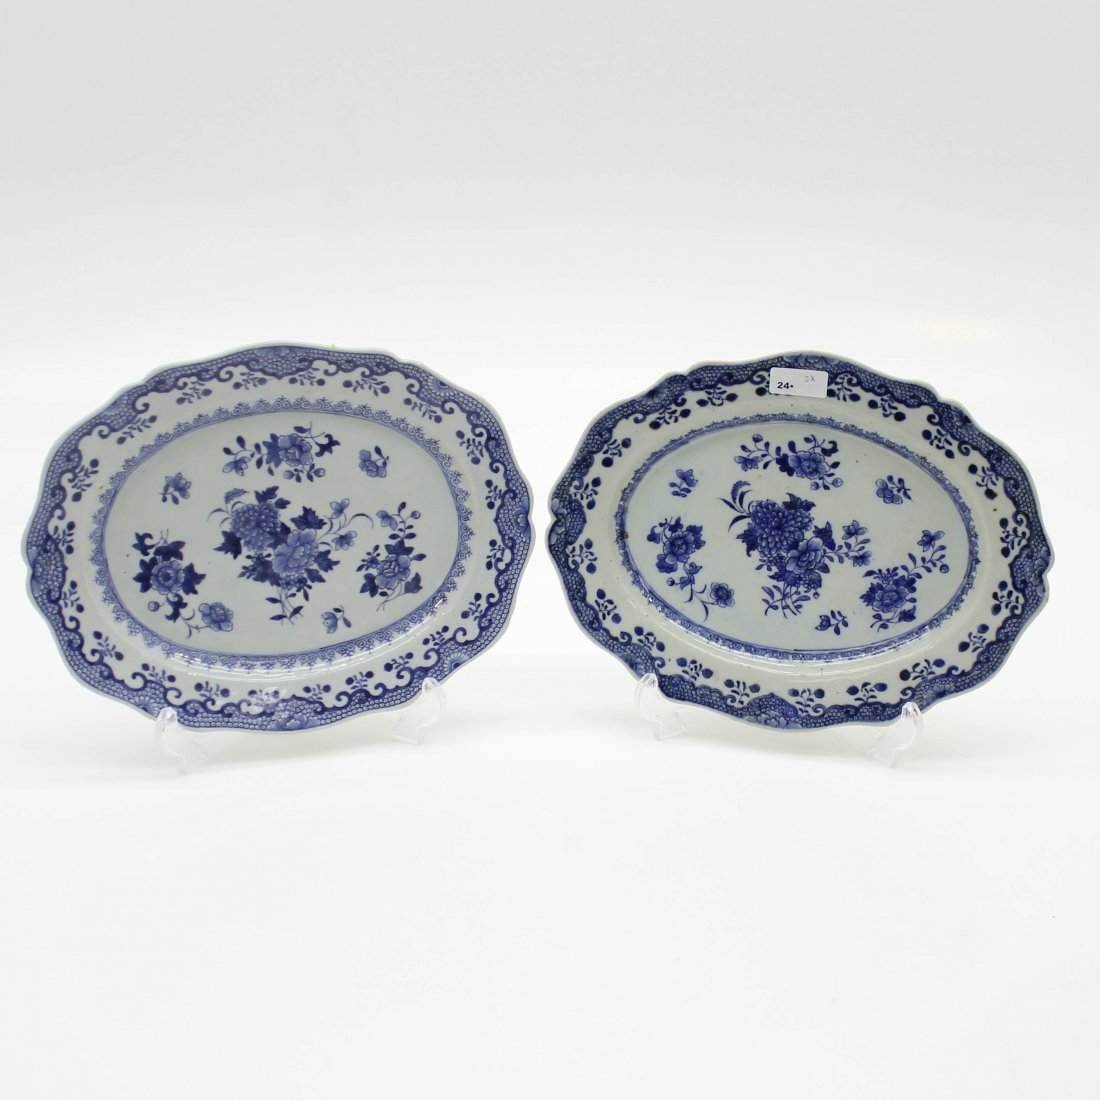 18th Century China Porcelain Platters